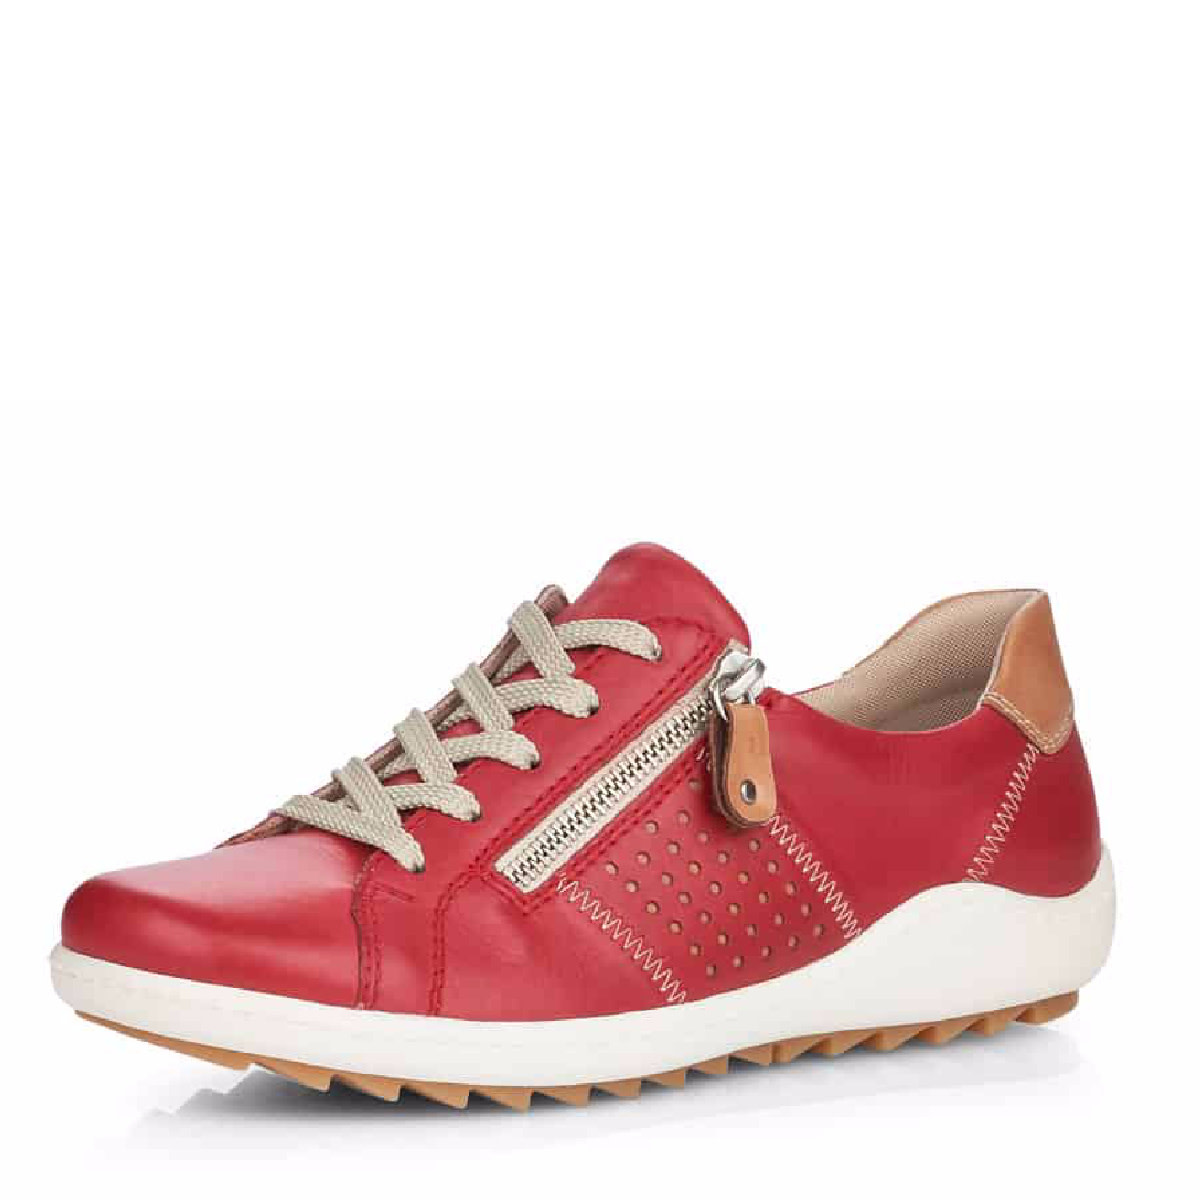 Remonte Remonte R1417-33 Sneaker Red